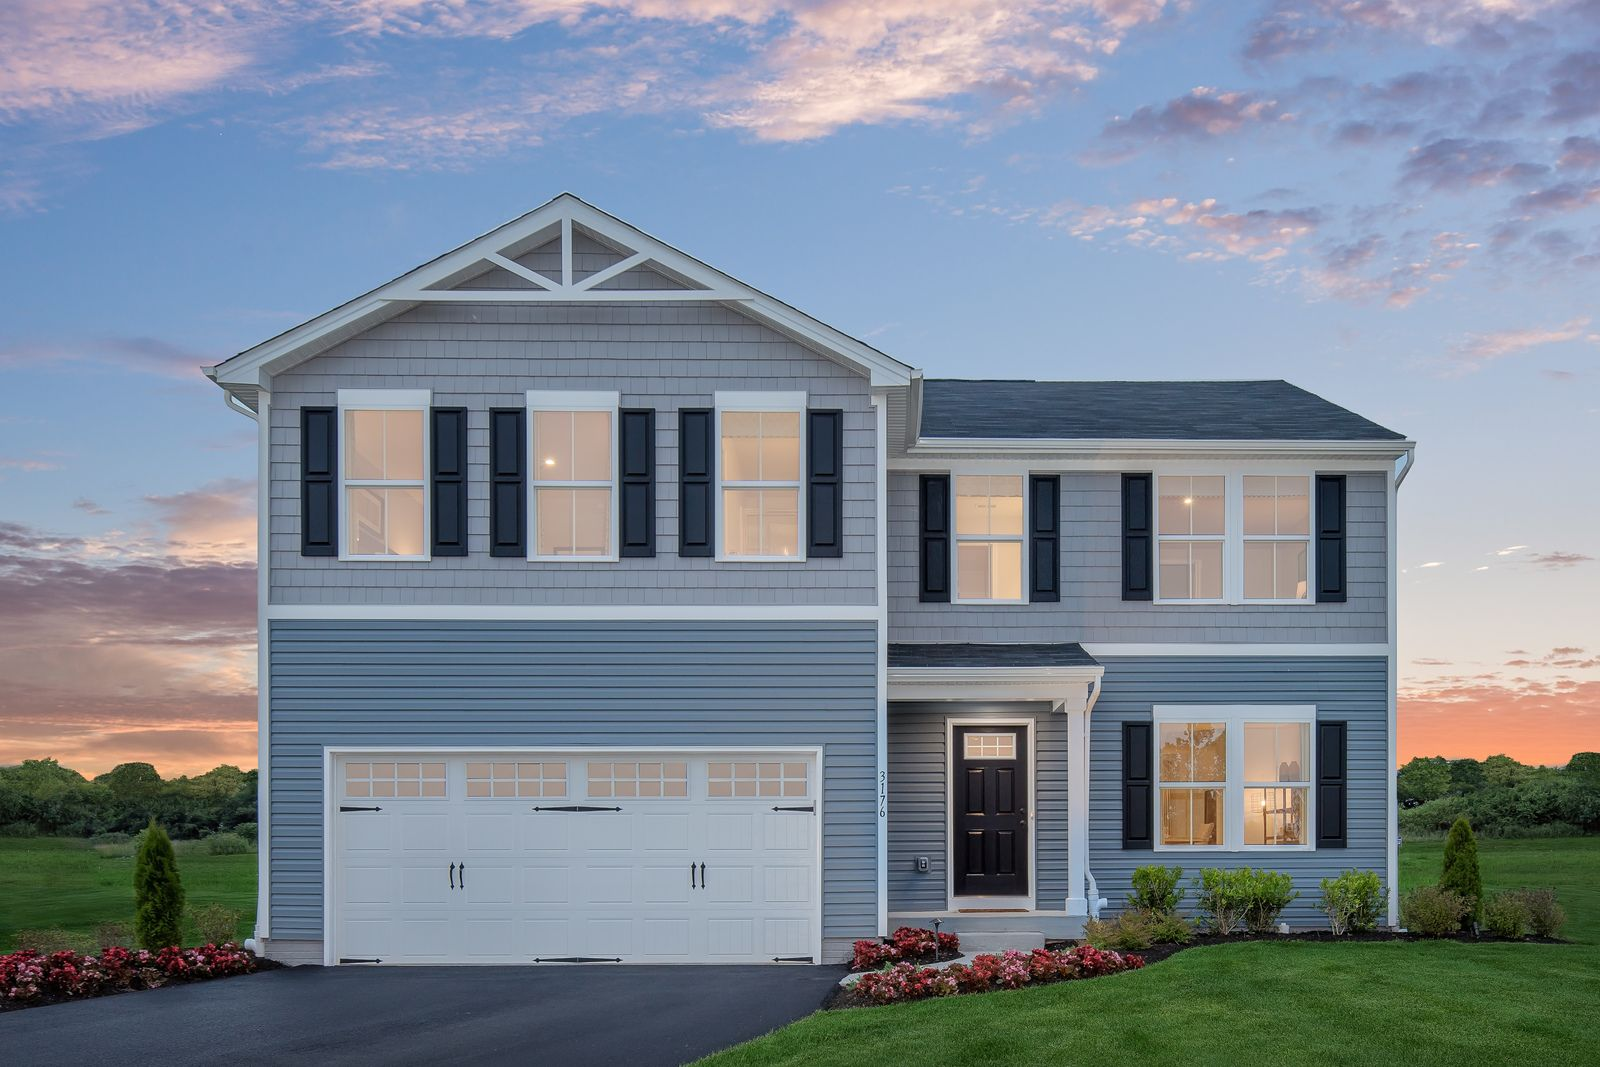 THE VILLAGE AT MIDDLETOWN HAS ONE HOMESITE REMAINING